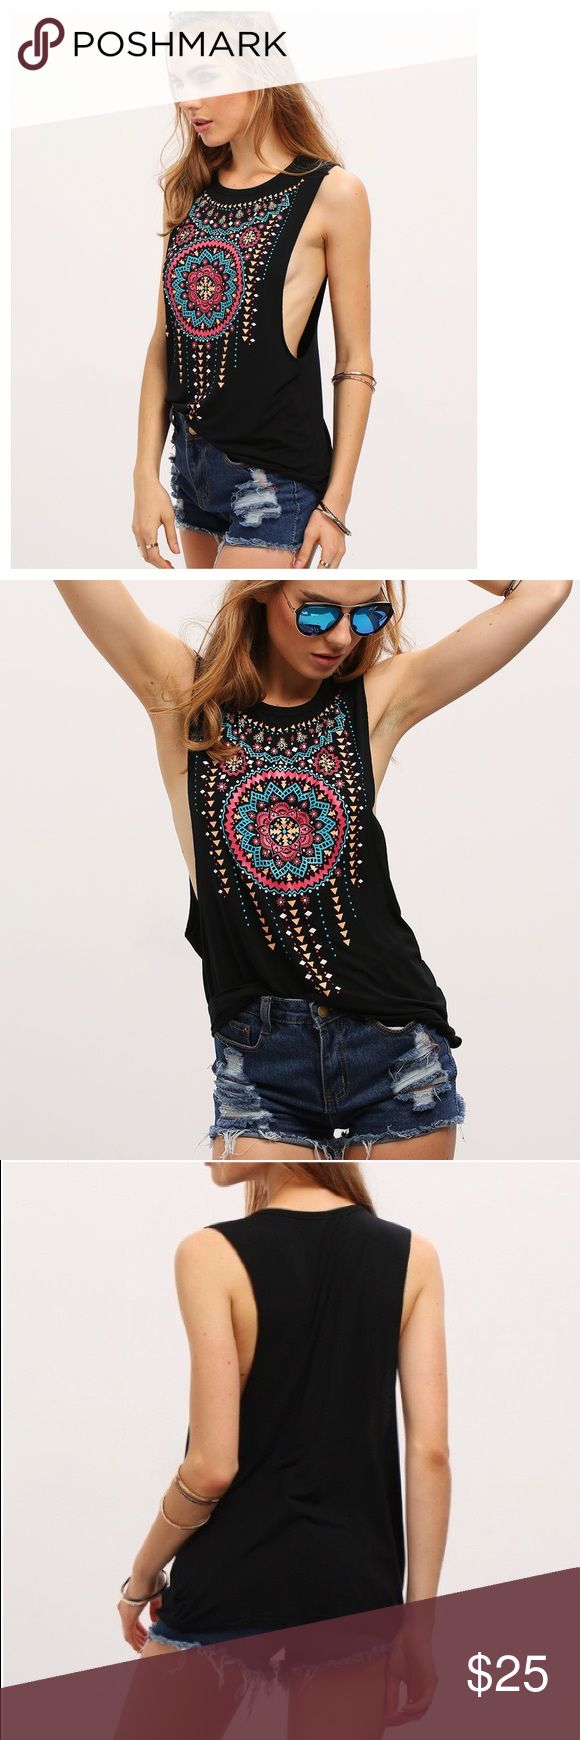 """Black Bohemian Tribal Print Muscle Shirt Fabulous bright tribal print on a black over-size arm opening t-shirt - Will look awesome over your bathing suit, or add lace tube top and leggings to funk it up for the Fall!!!  Approx. measurements: Length:26"""", Bust: 38.6"""", Shoulders:15.4"""" - Brand New Boutique Tops Muscle Tees"""